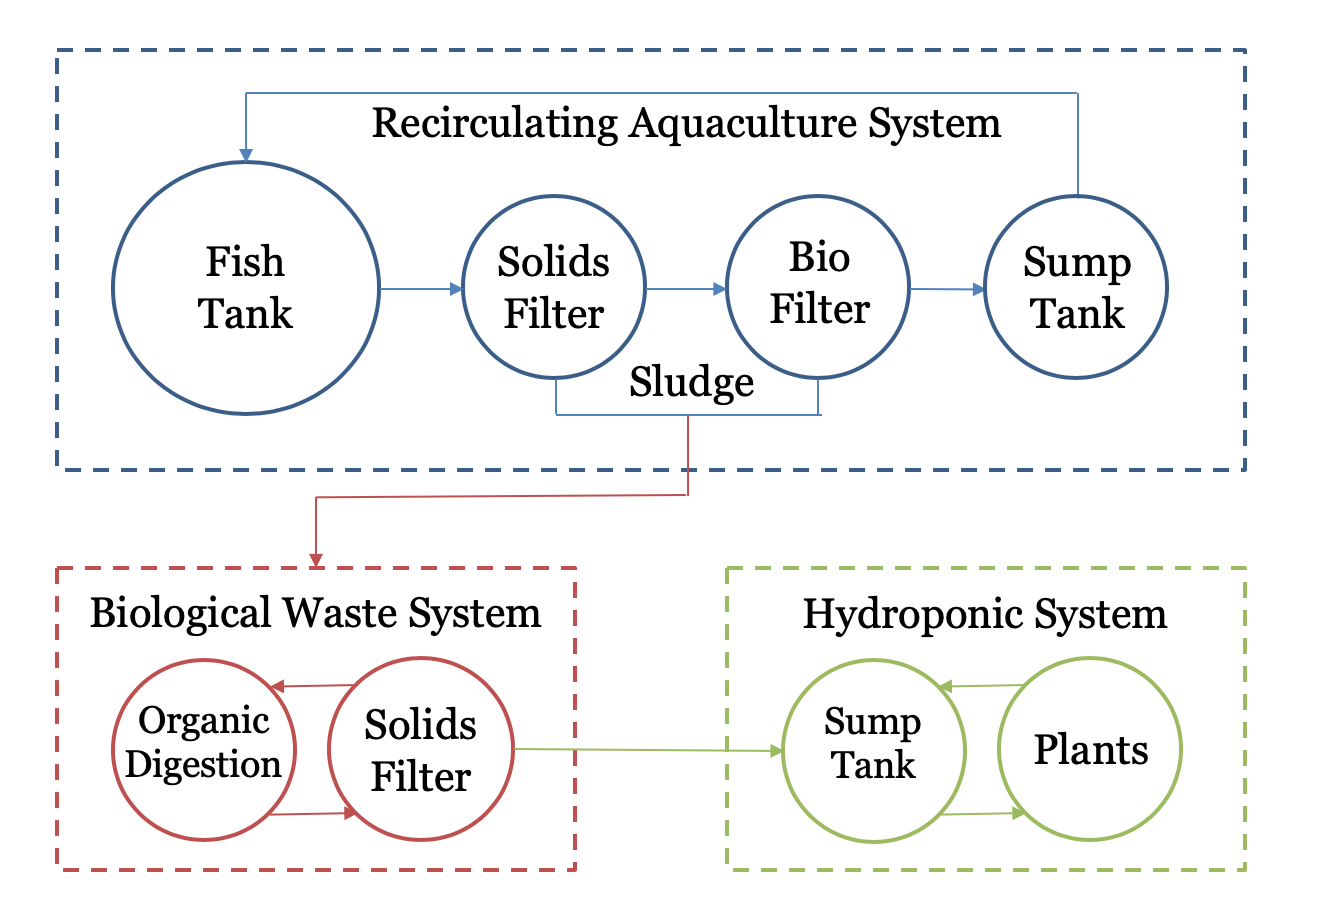 a small decoupled system can be very easy to build and operate if an ast bead filter is used the fish loop is reduced to two components fish tank  [ 1322 x 902 Pixel ]